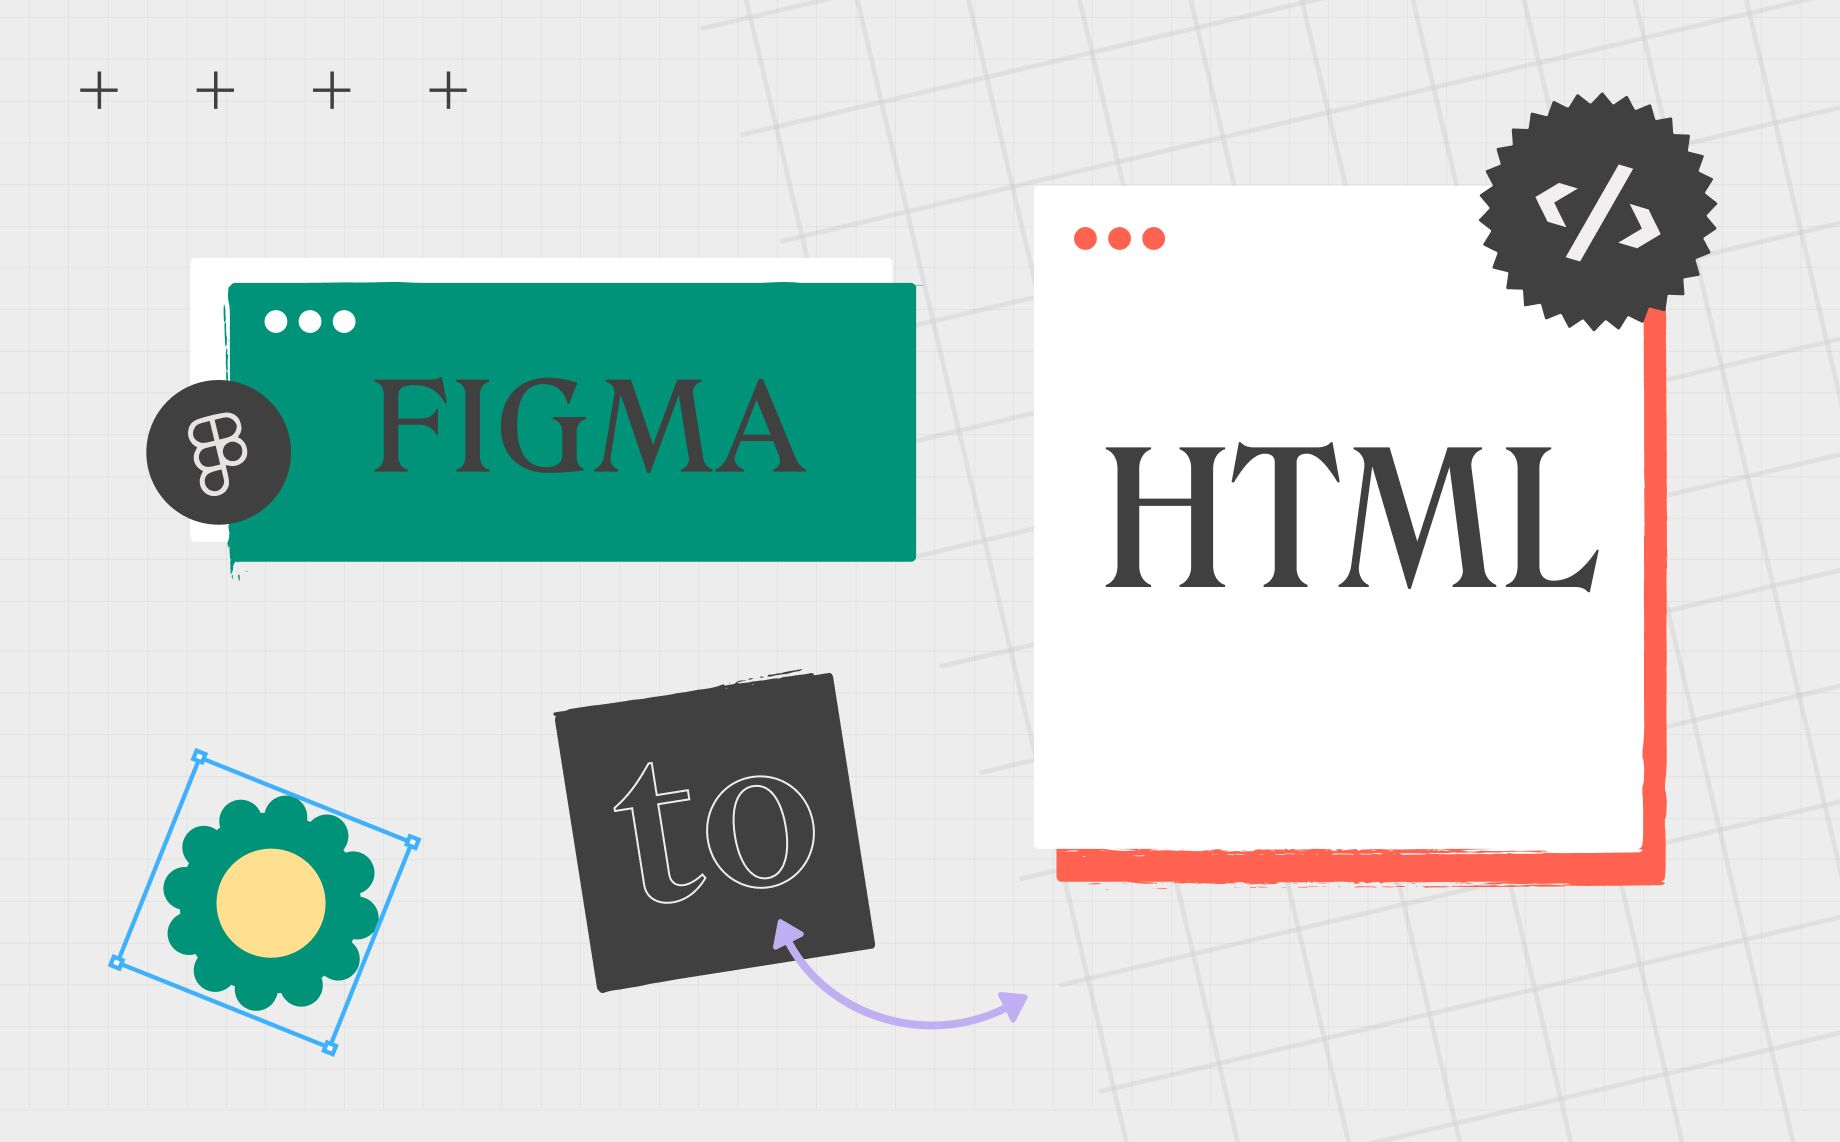 How to Export Figma to HTML